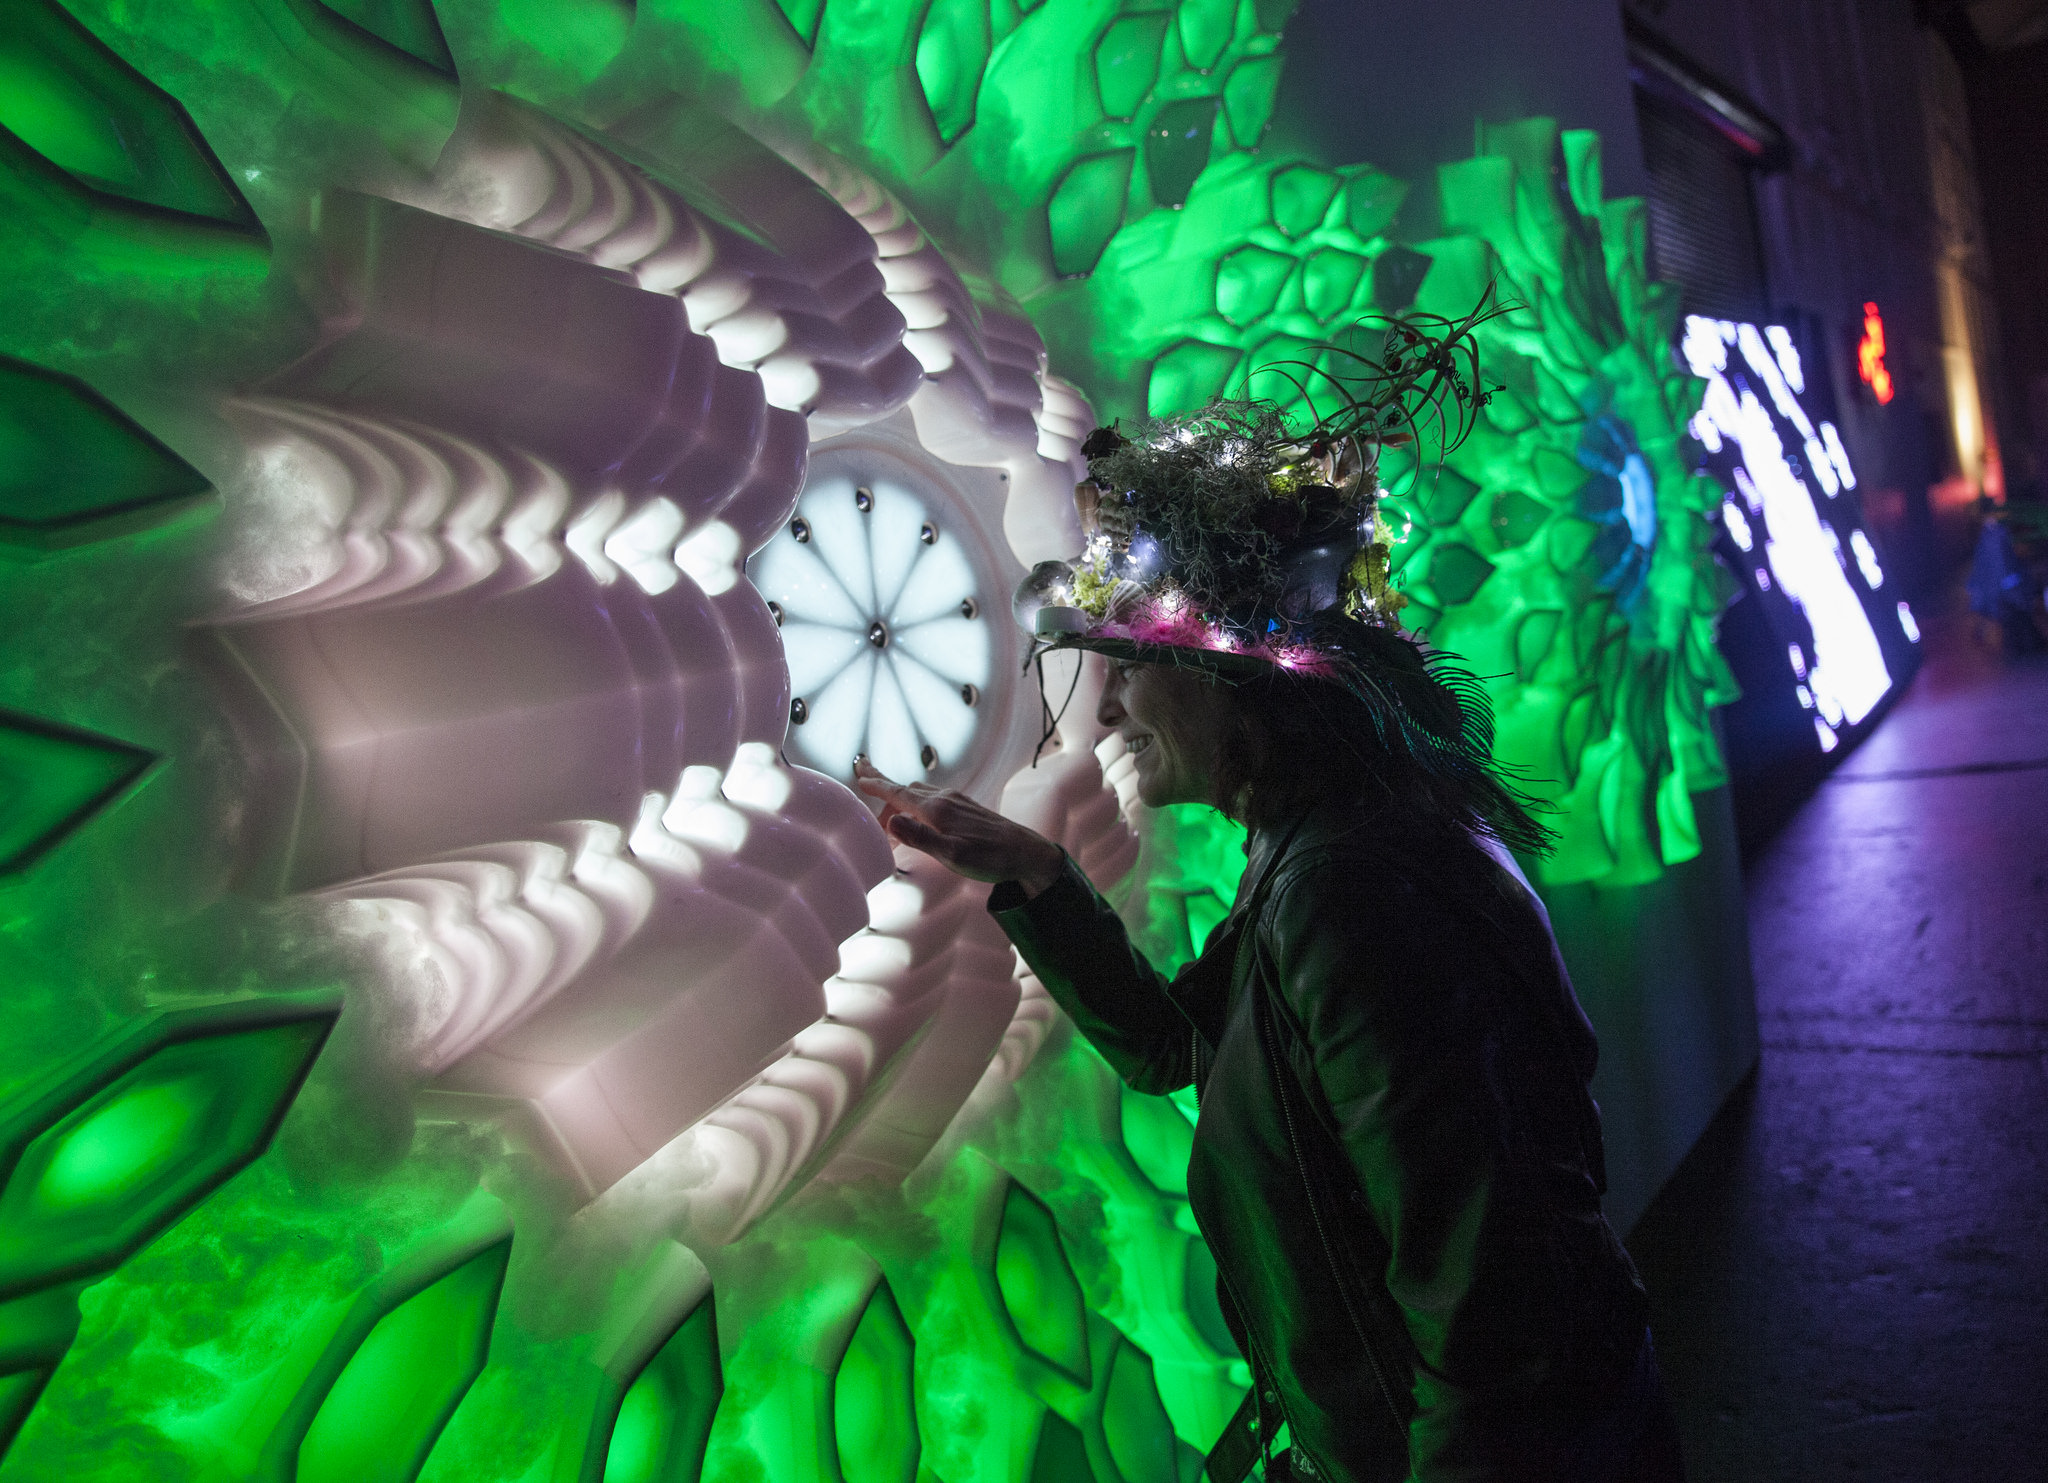 Call For Makers: Exhibit at the Bay Area Maker Faire 2016